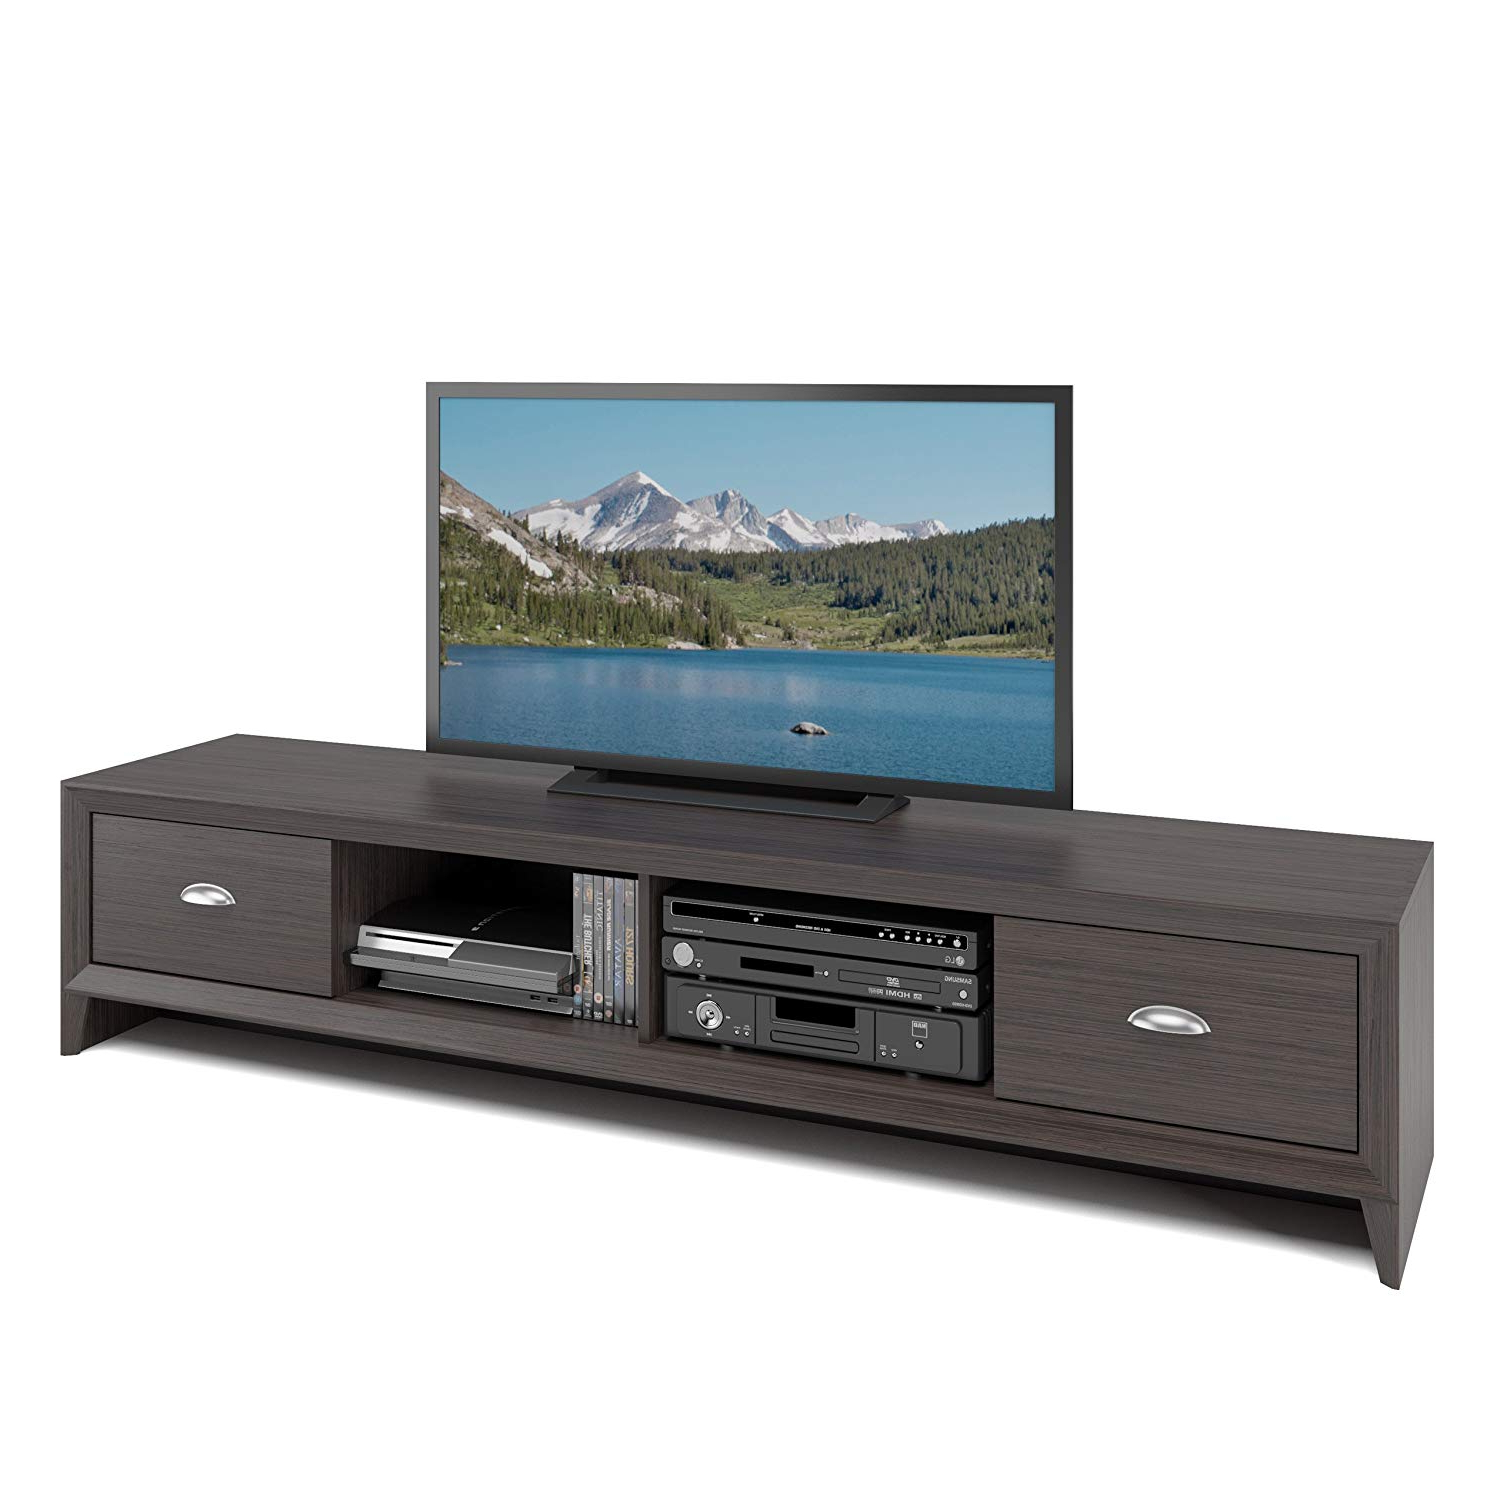 Long Tv Stands Regarding 2018 Amazon: Corliving Tlk 872 B Lakewood Tv Bench, Modern Wenge (Gallery 6 of 20)